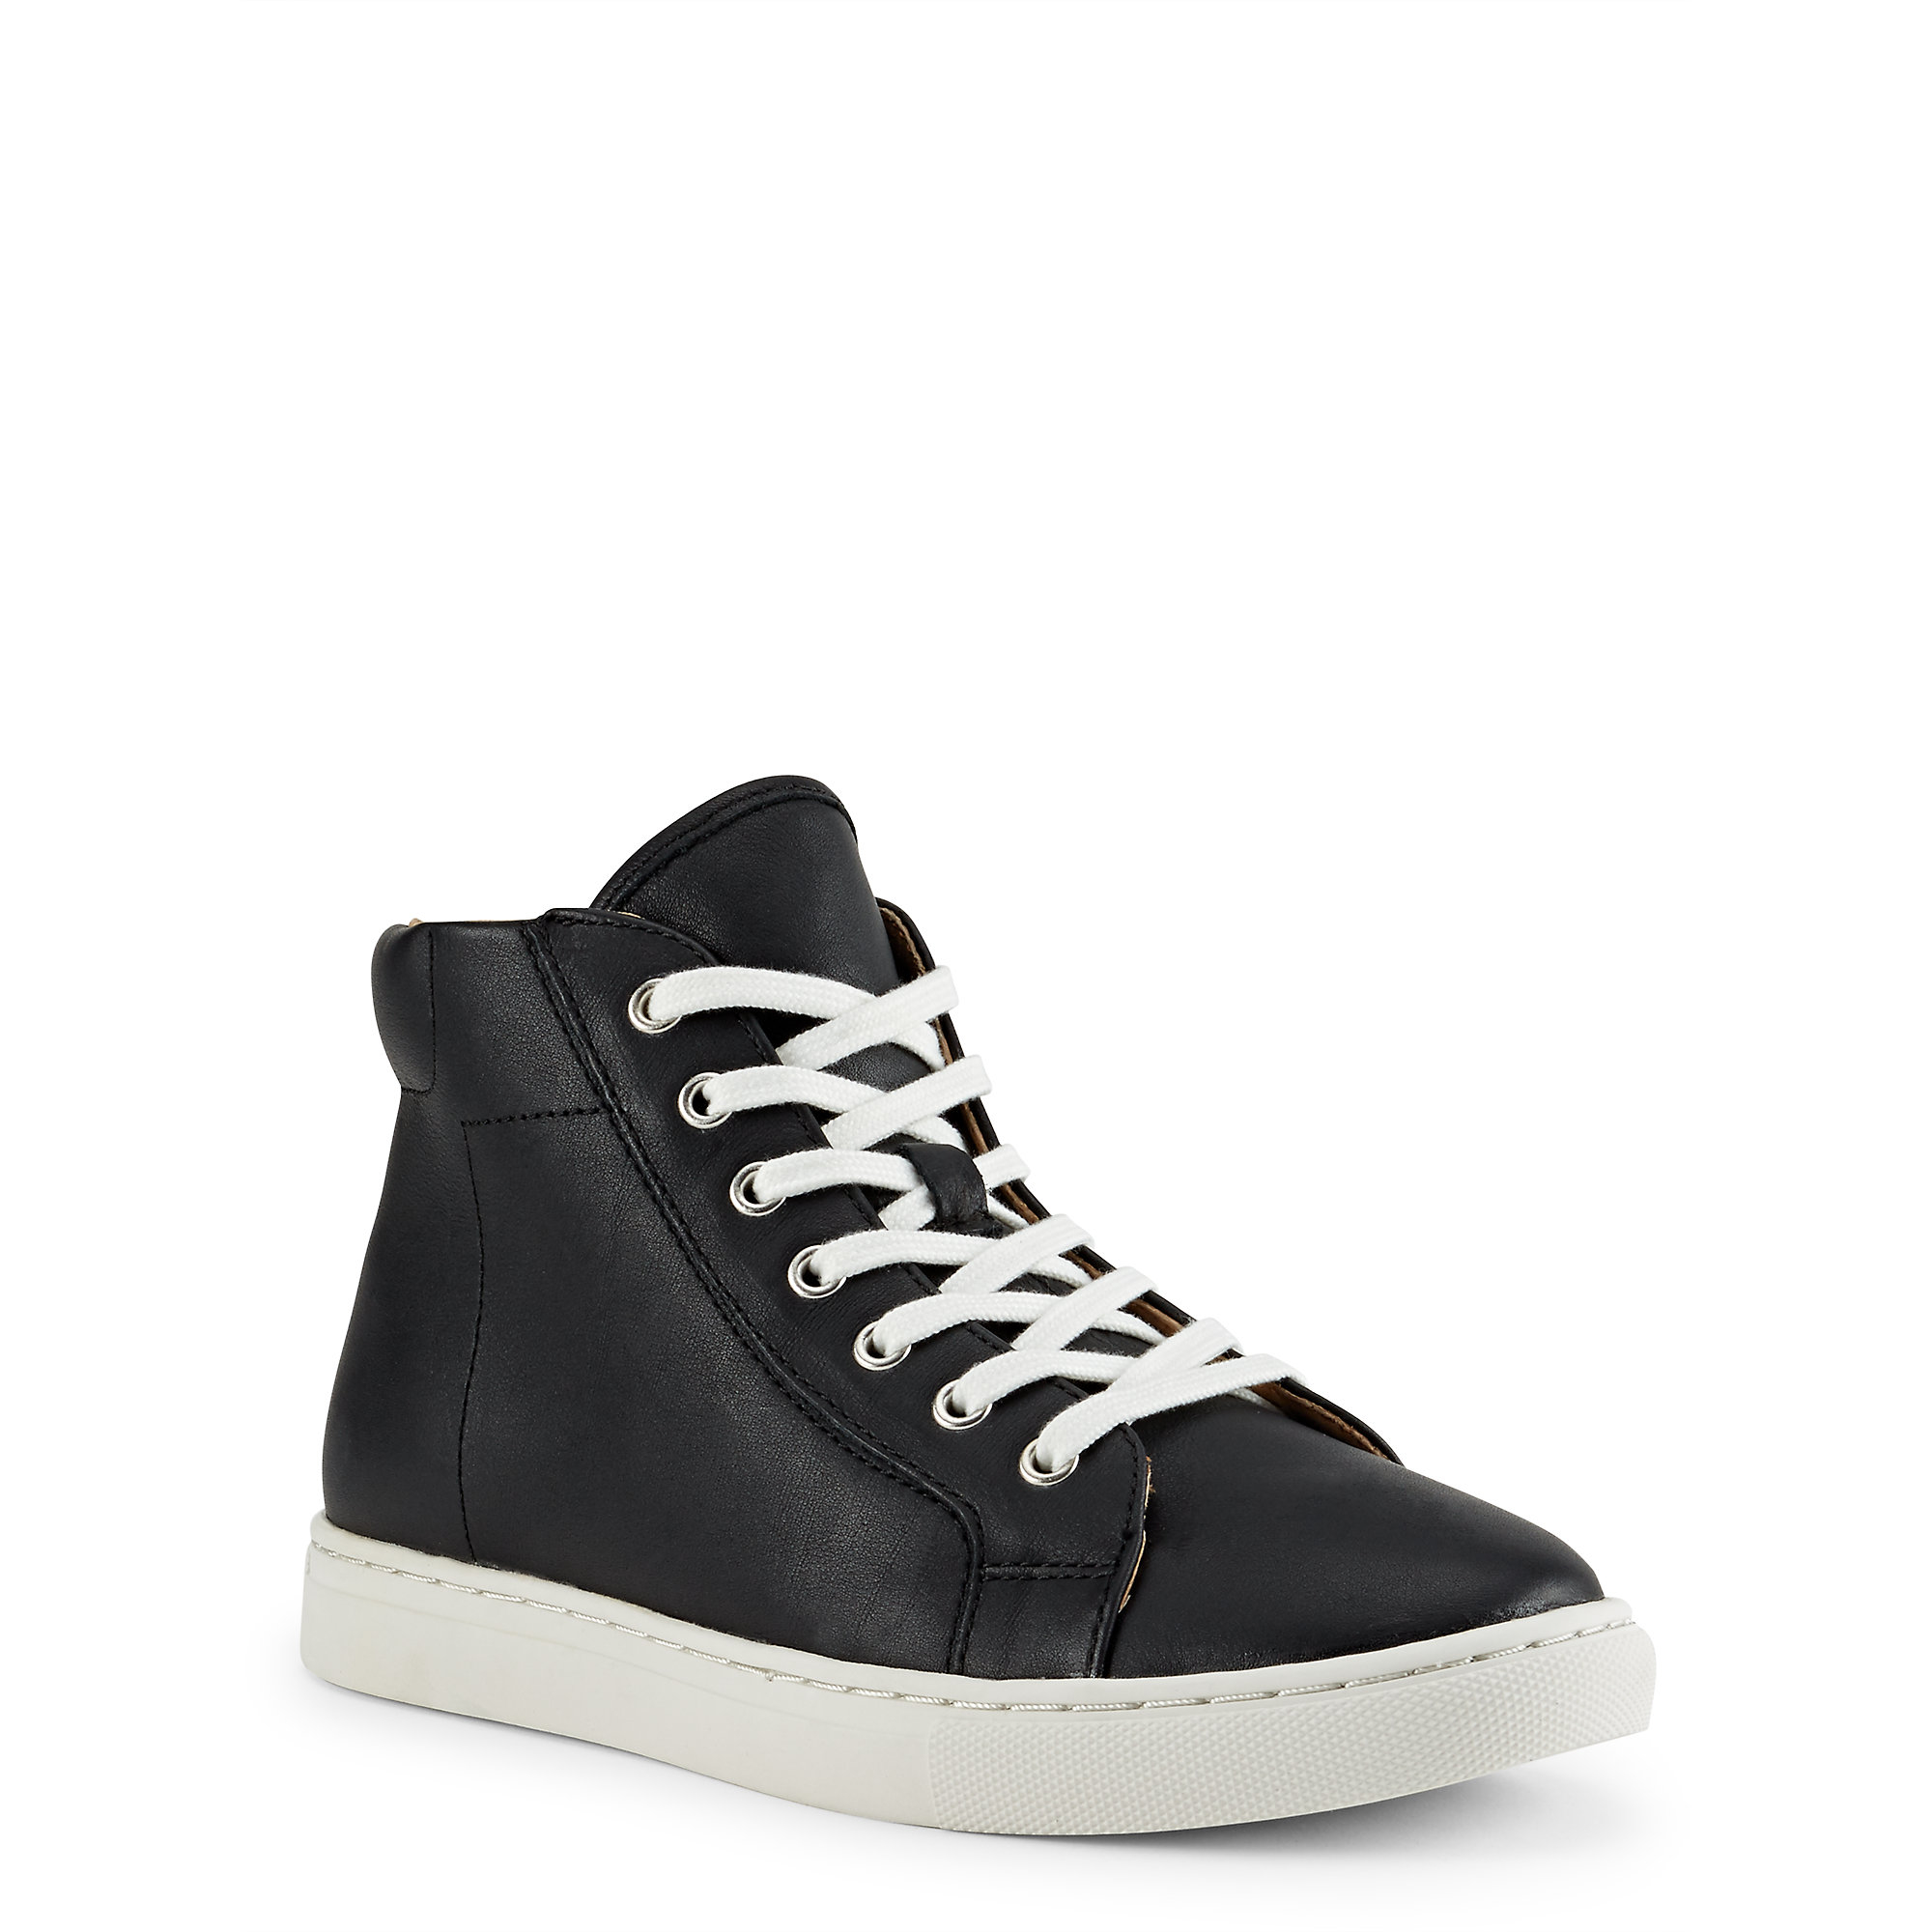 polo ralph lauren leather high top sneaker in black lyst. Black Bedroom Furniture Sets. Home Design Ideas